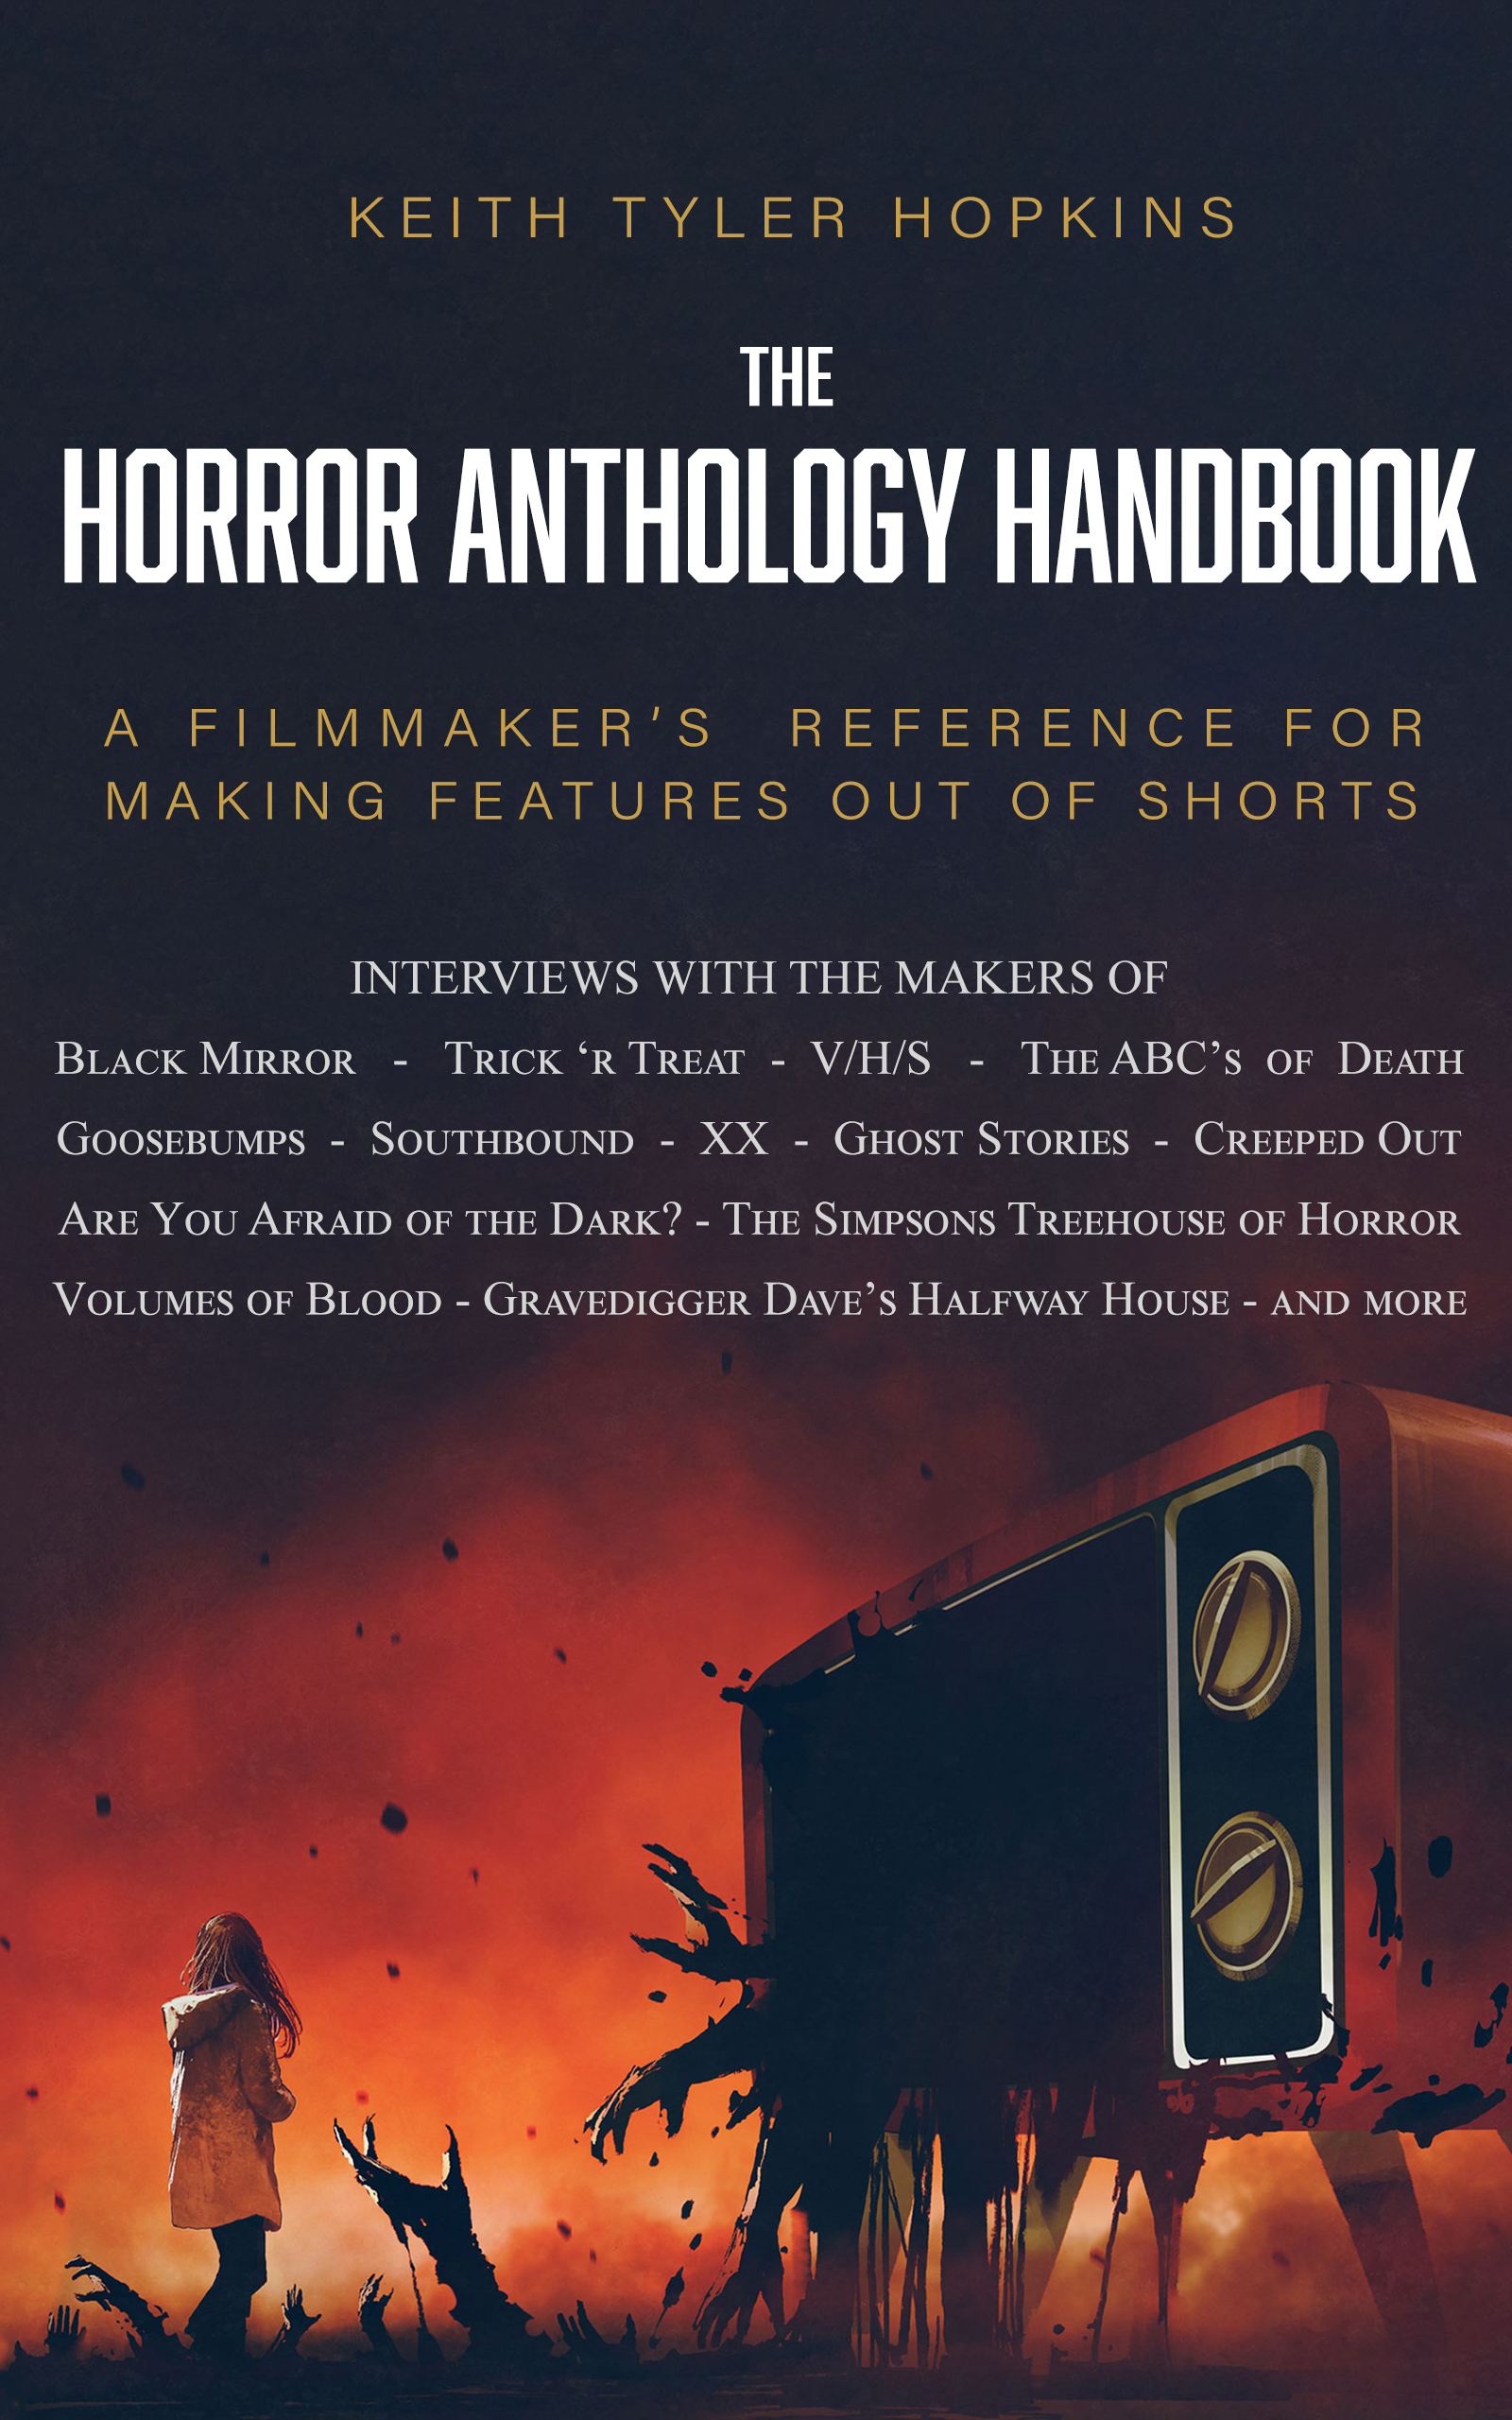 The Horror Anthology Handbook